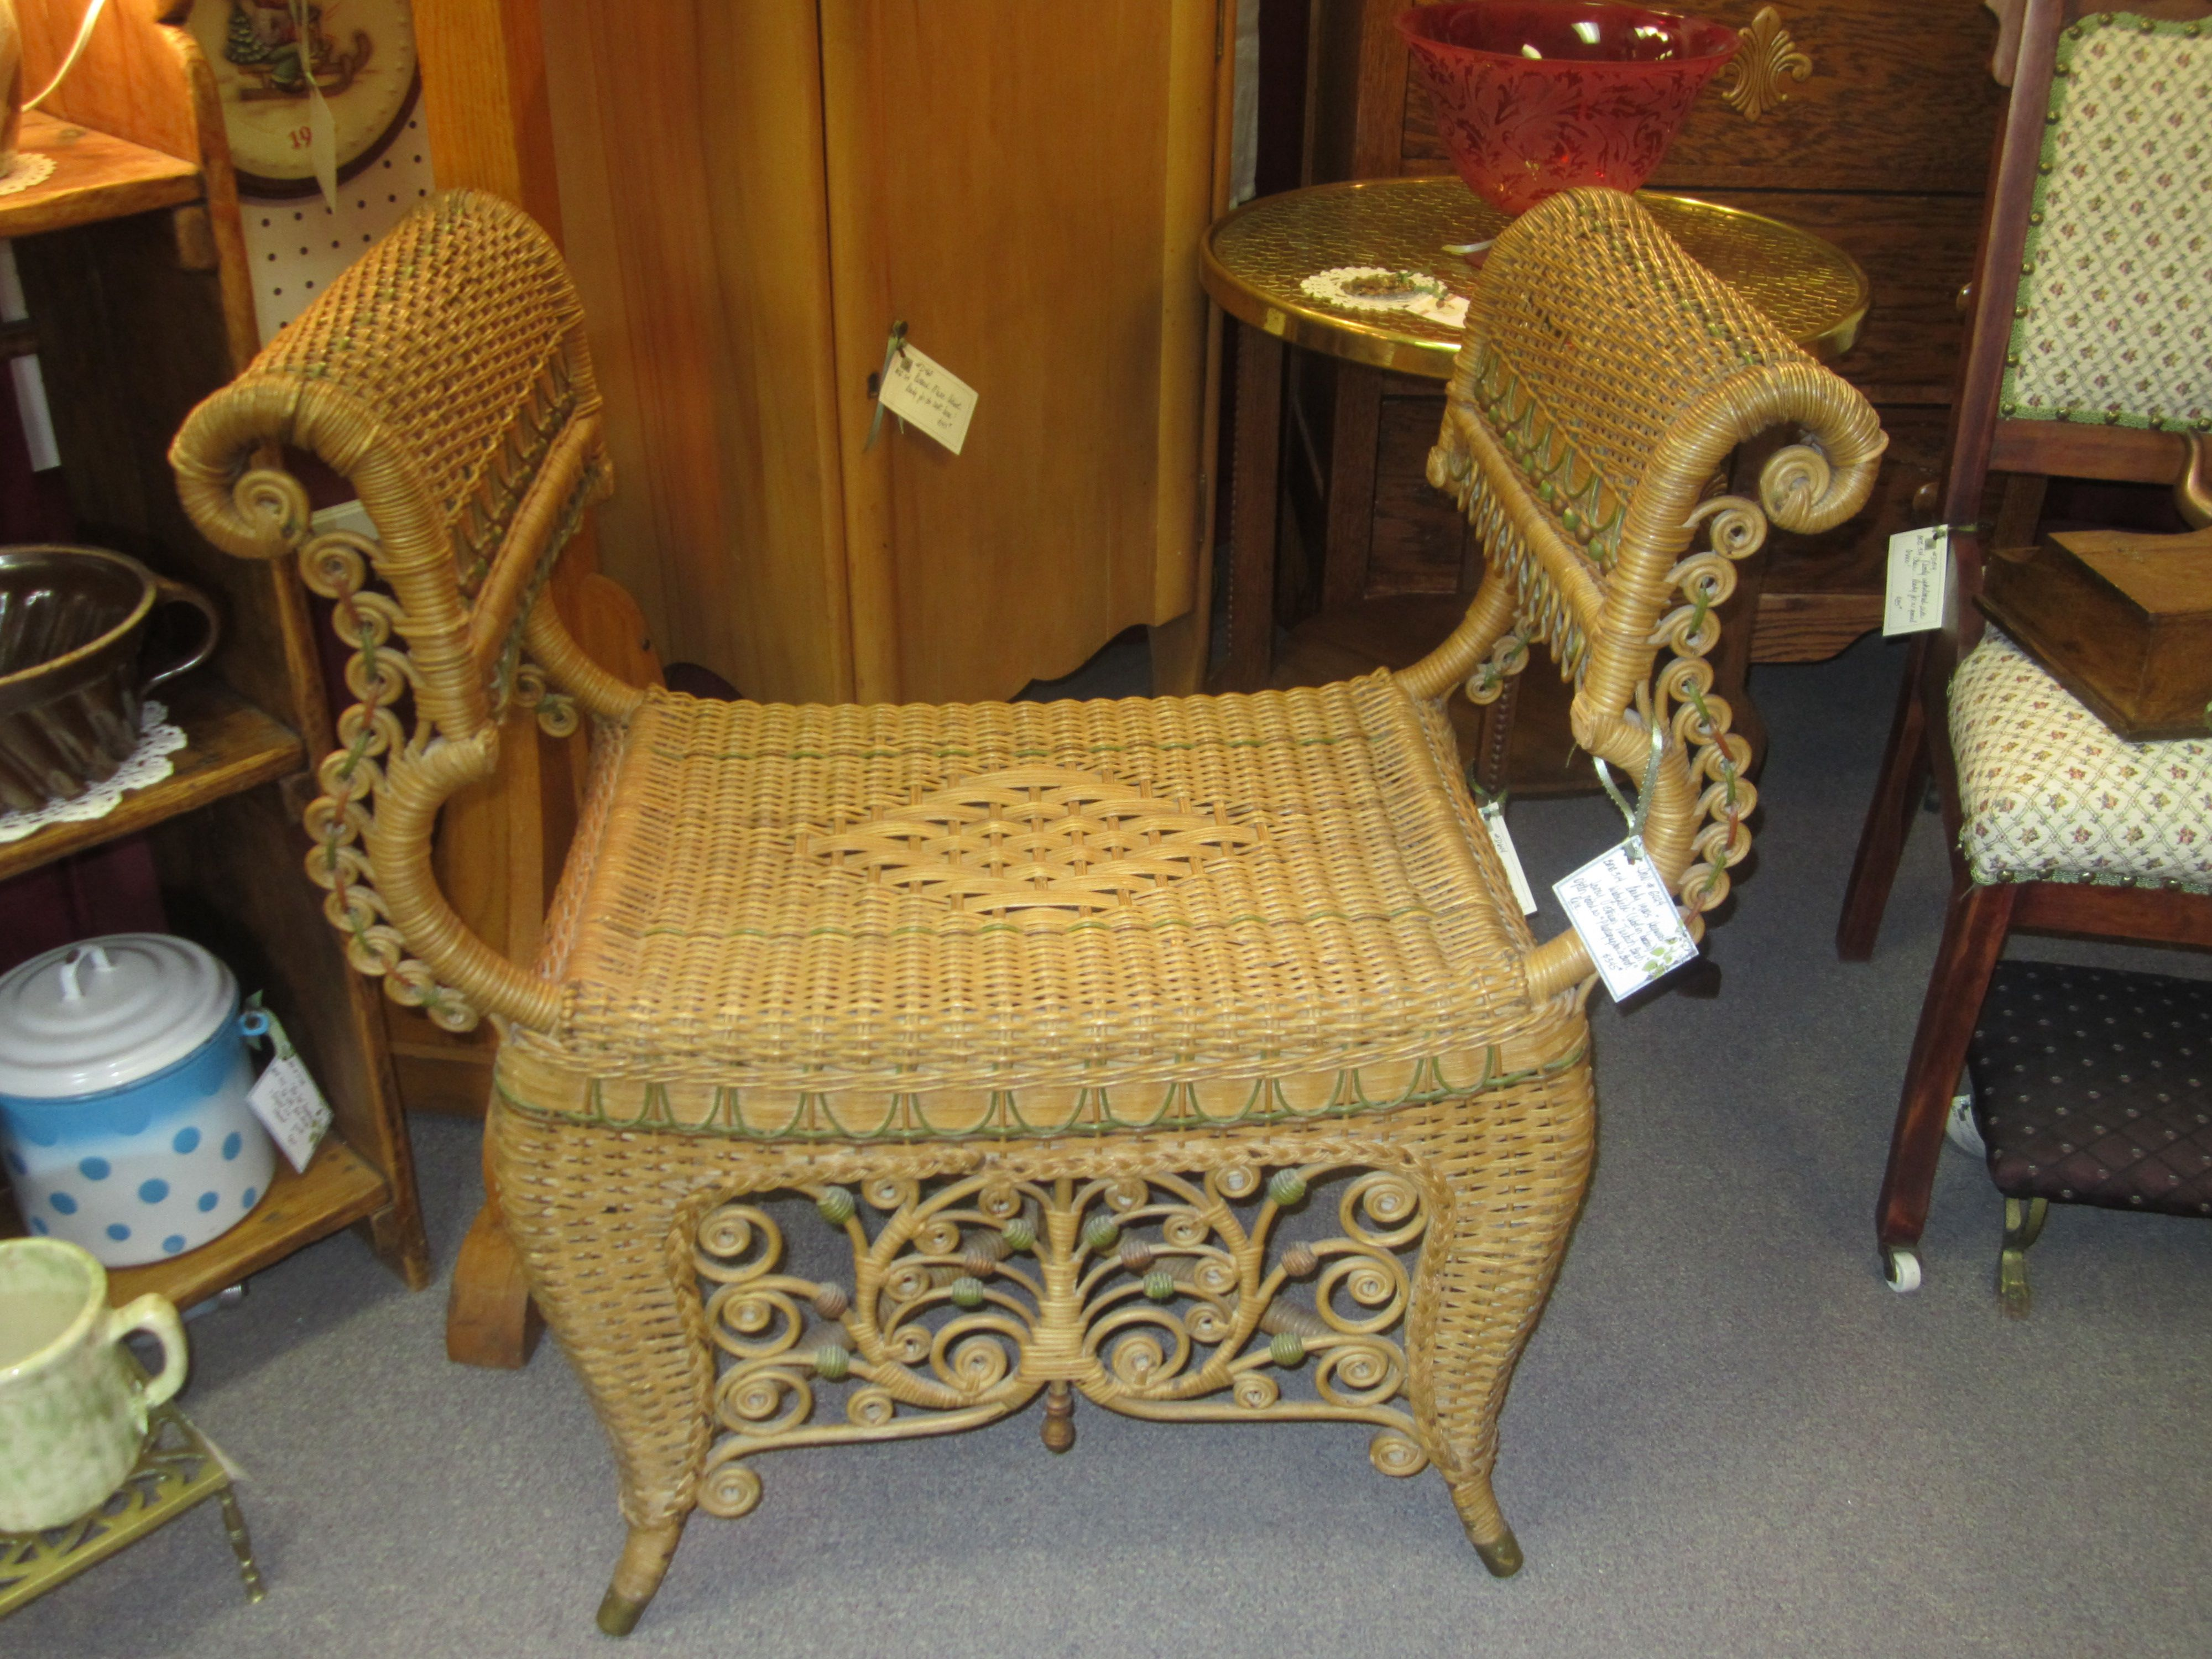 Antique wicker bustle seat.  Great condition.  What a unique looking piece!